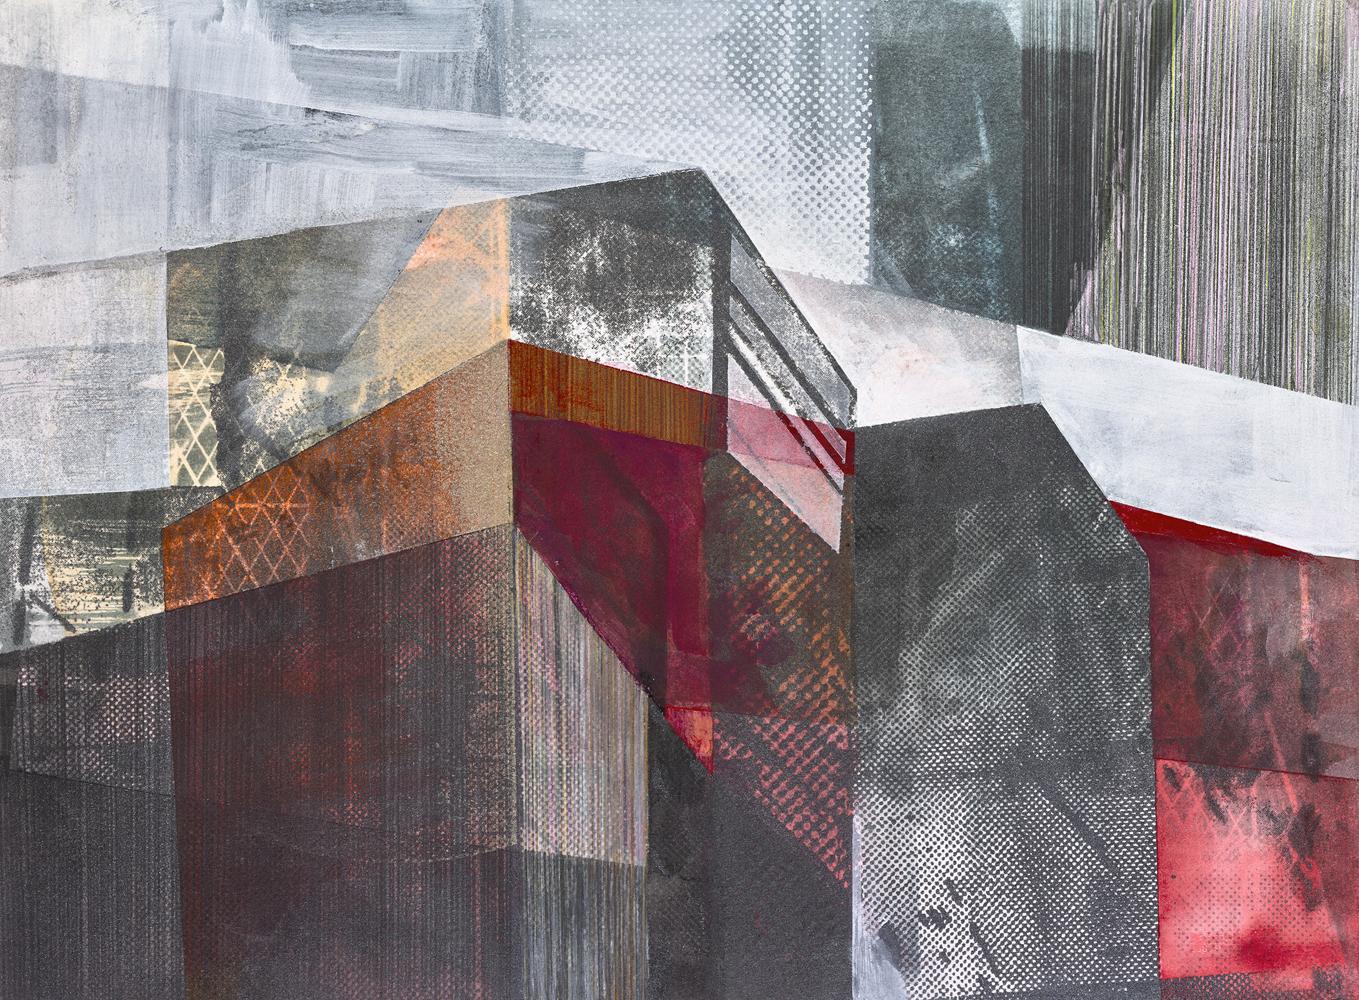 Amanda Knowles, Street View II, 2020, screen print, graphite, acrylic on paper, 11 x 15 inches, $600.